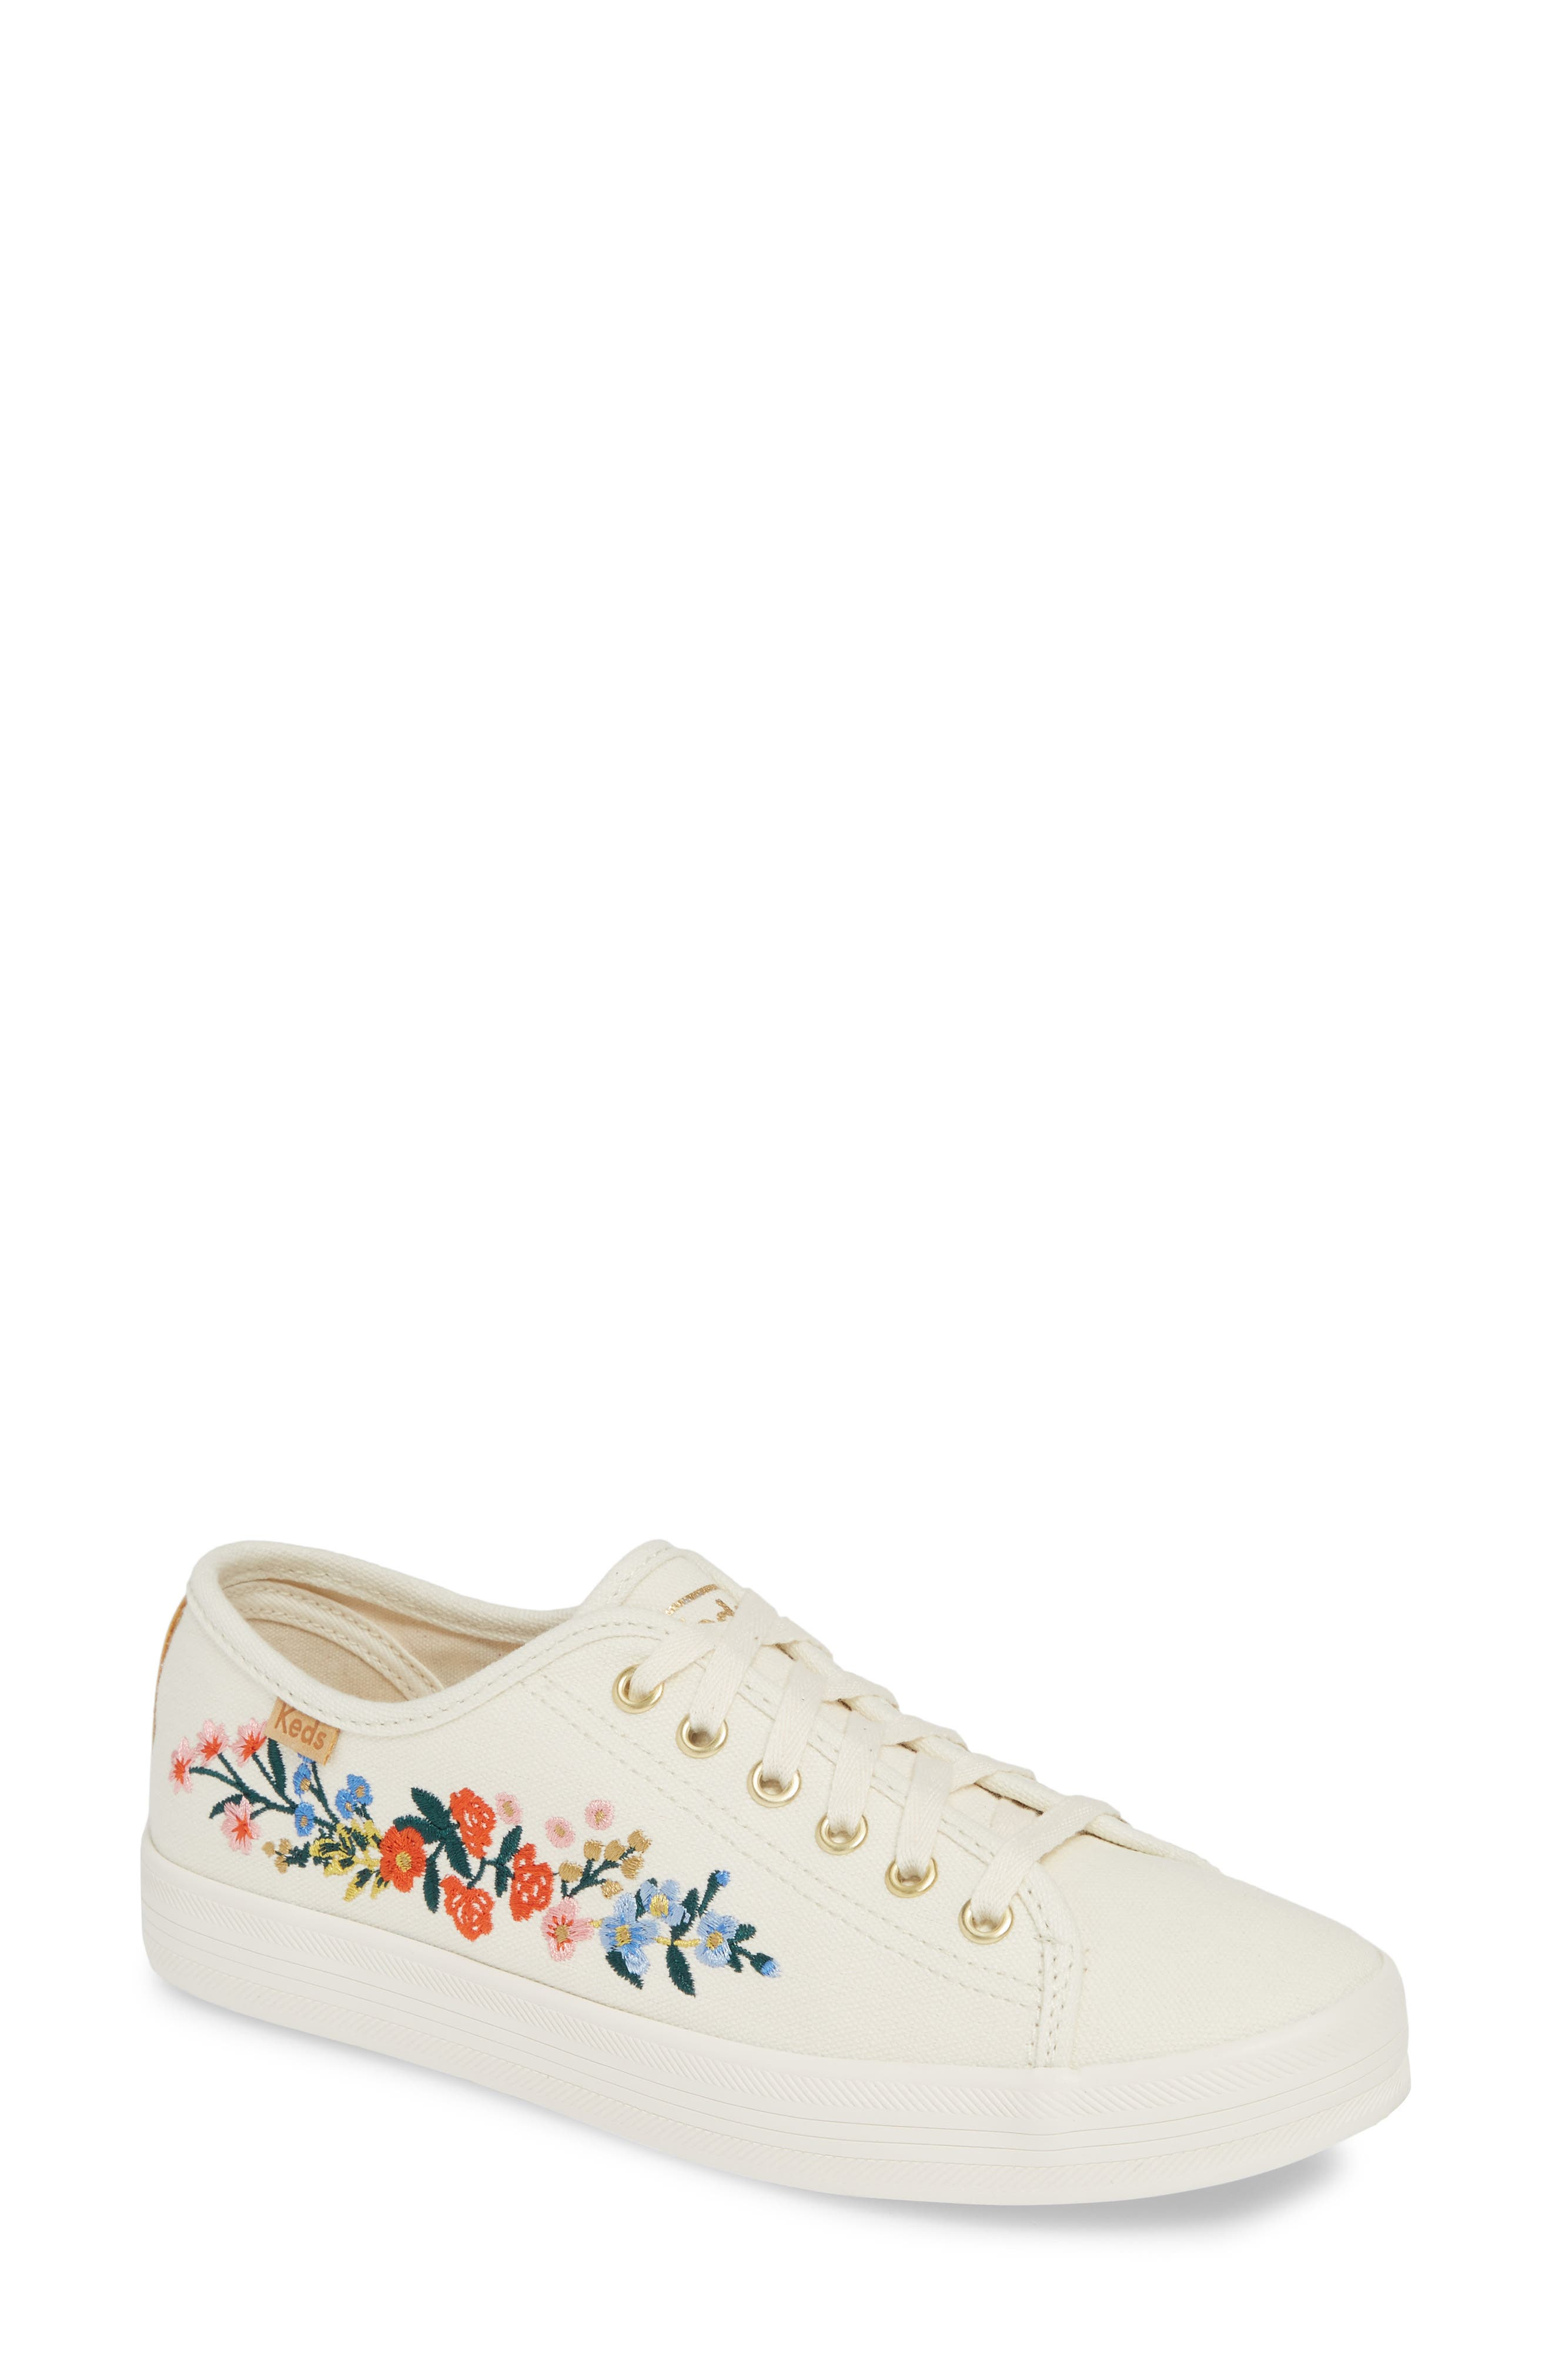 Keds X Rifle Paper Co. Vine Sneaker, Ivory